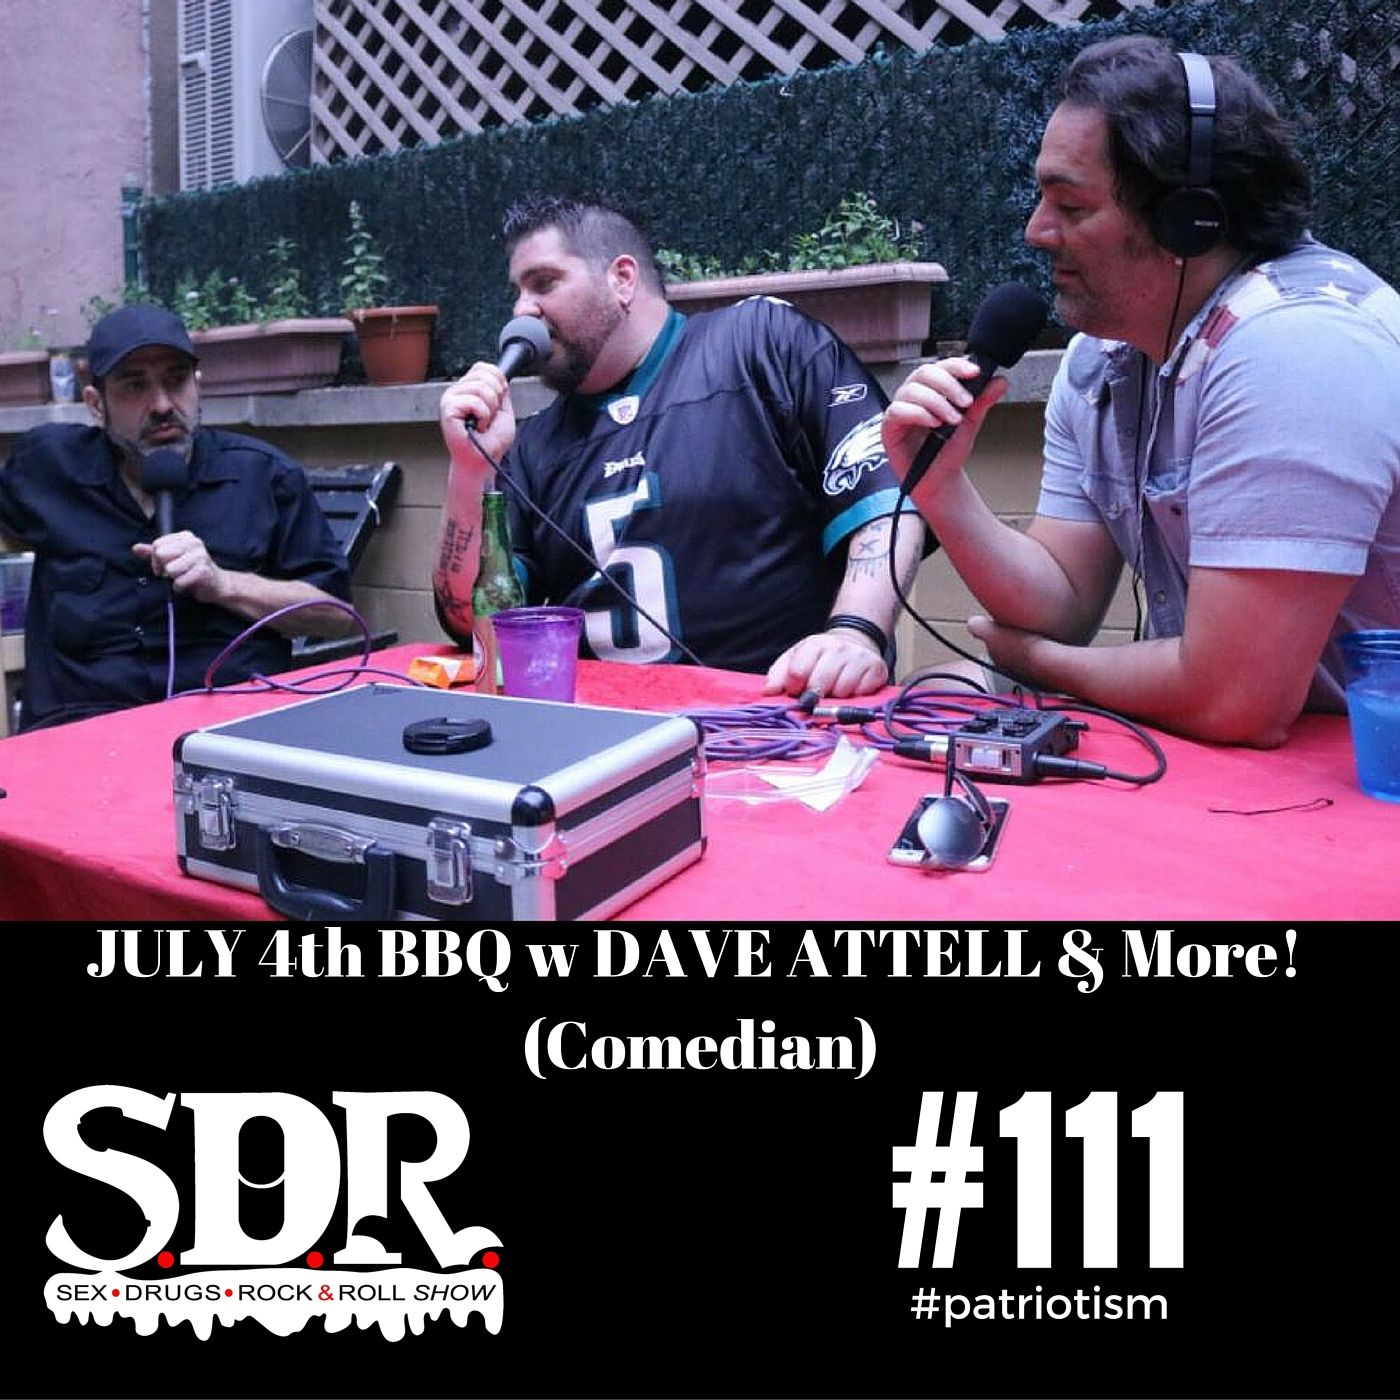 SDR #111 w Dave Attell & More